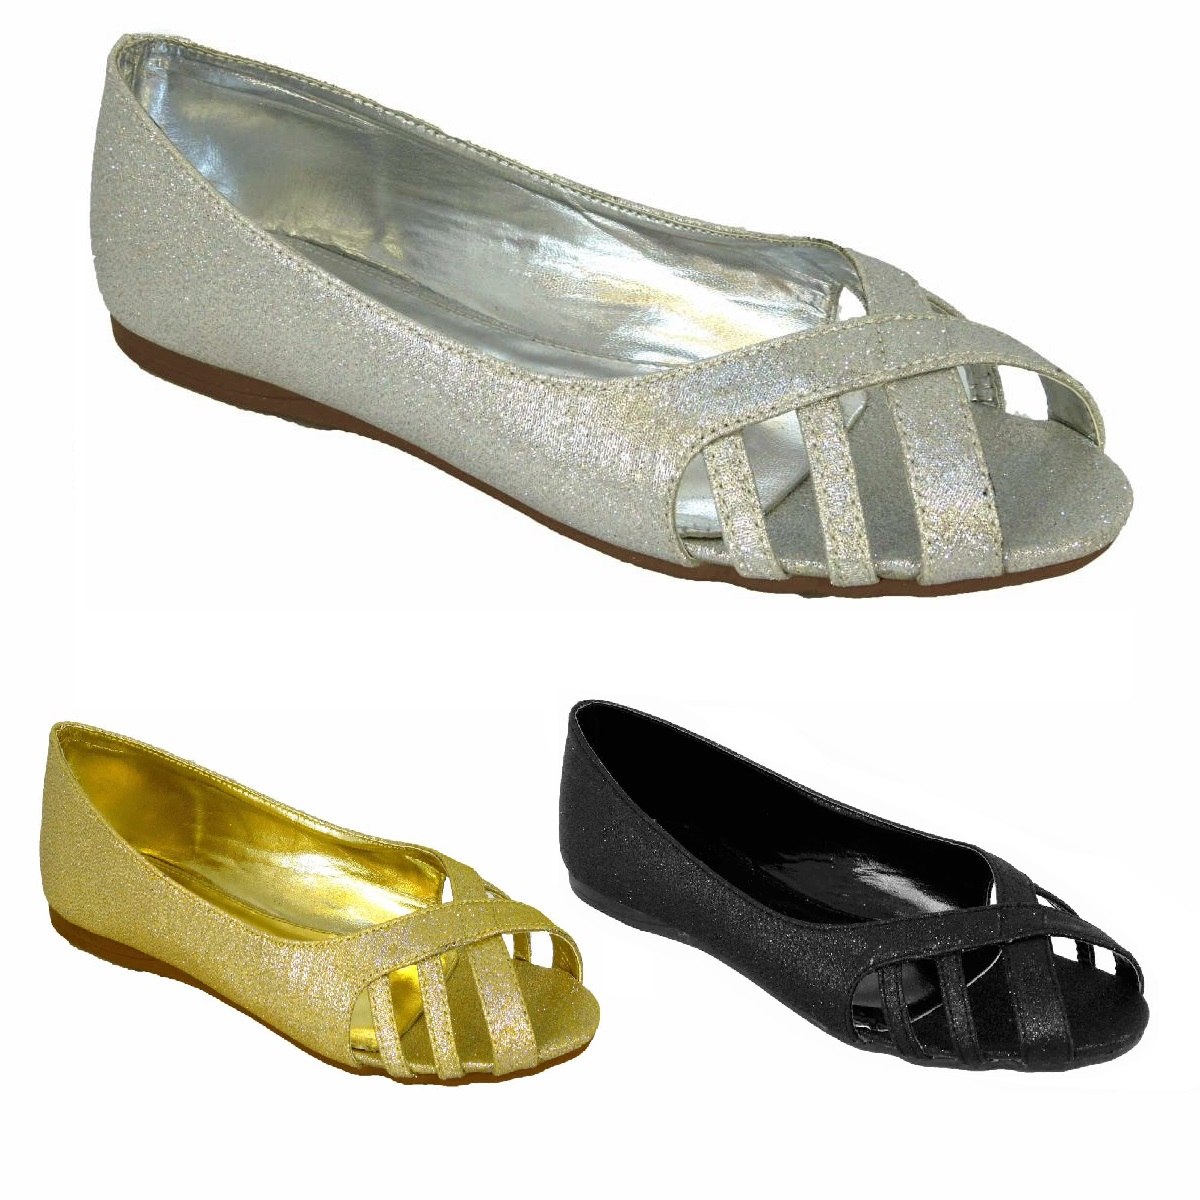 WOMENS FLAT SILVER SLIP-ON WEDDING BRIDAL COMFY LOAFER PARTY BALLET SHOES UK 3-8